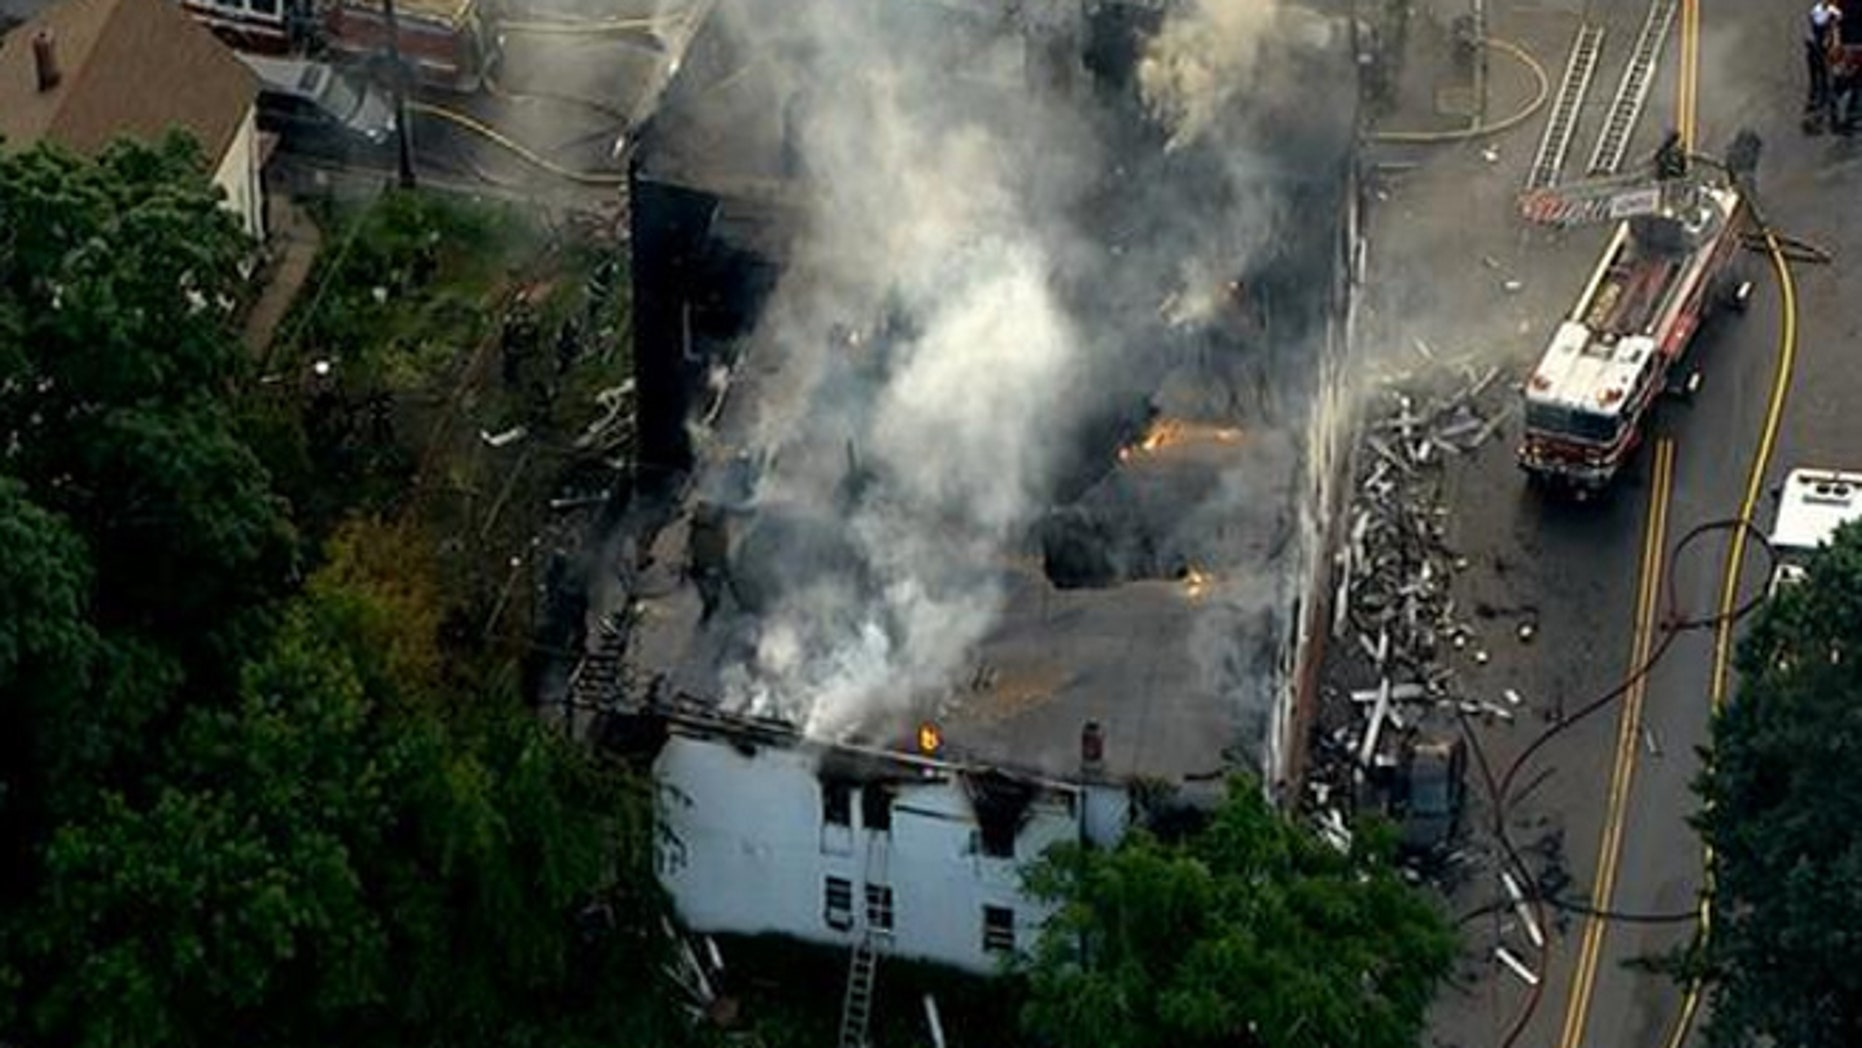 Authorities say seven people died early Thursday morning in a fire at a residential building in Lowell. Witnesses described a chaotic scene.